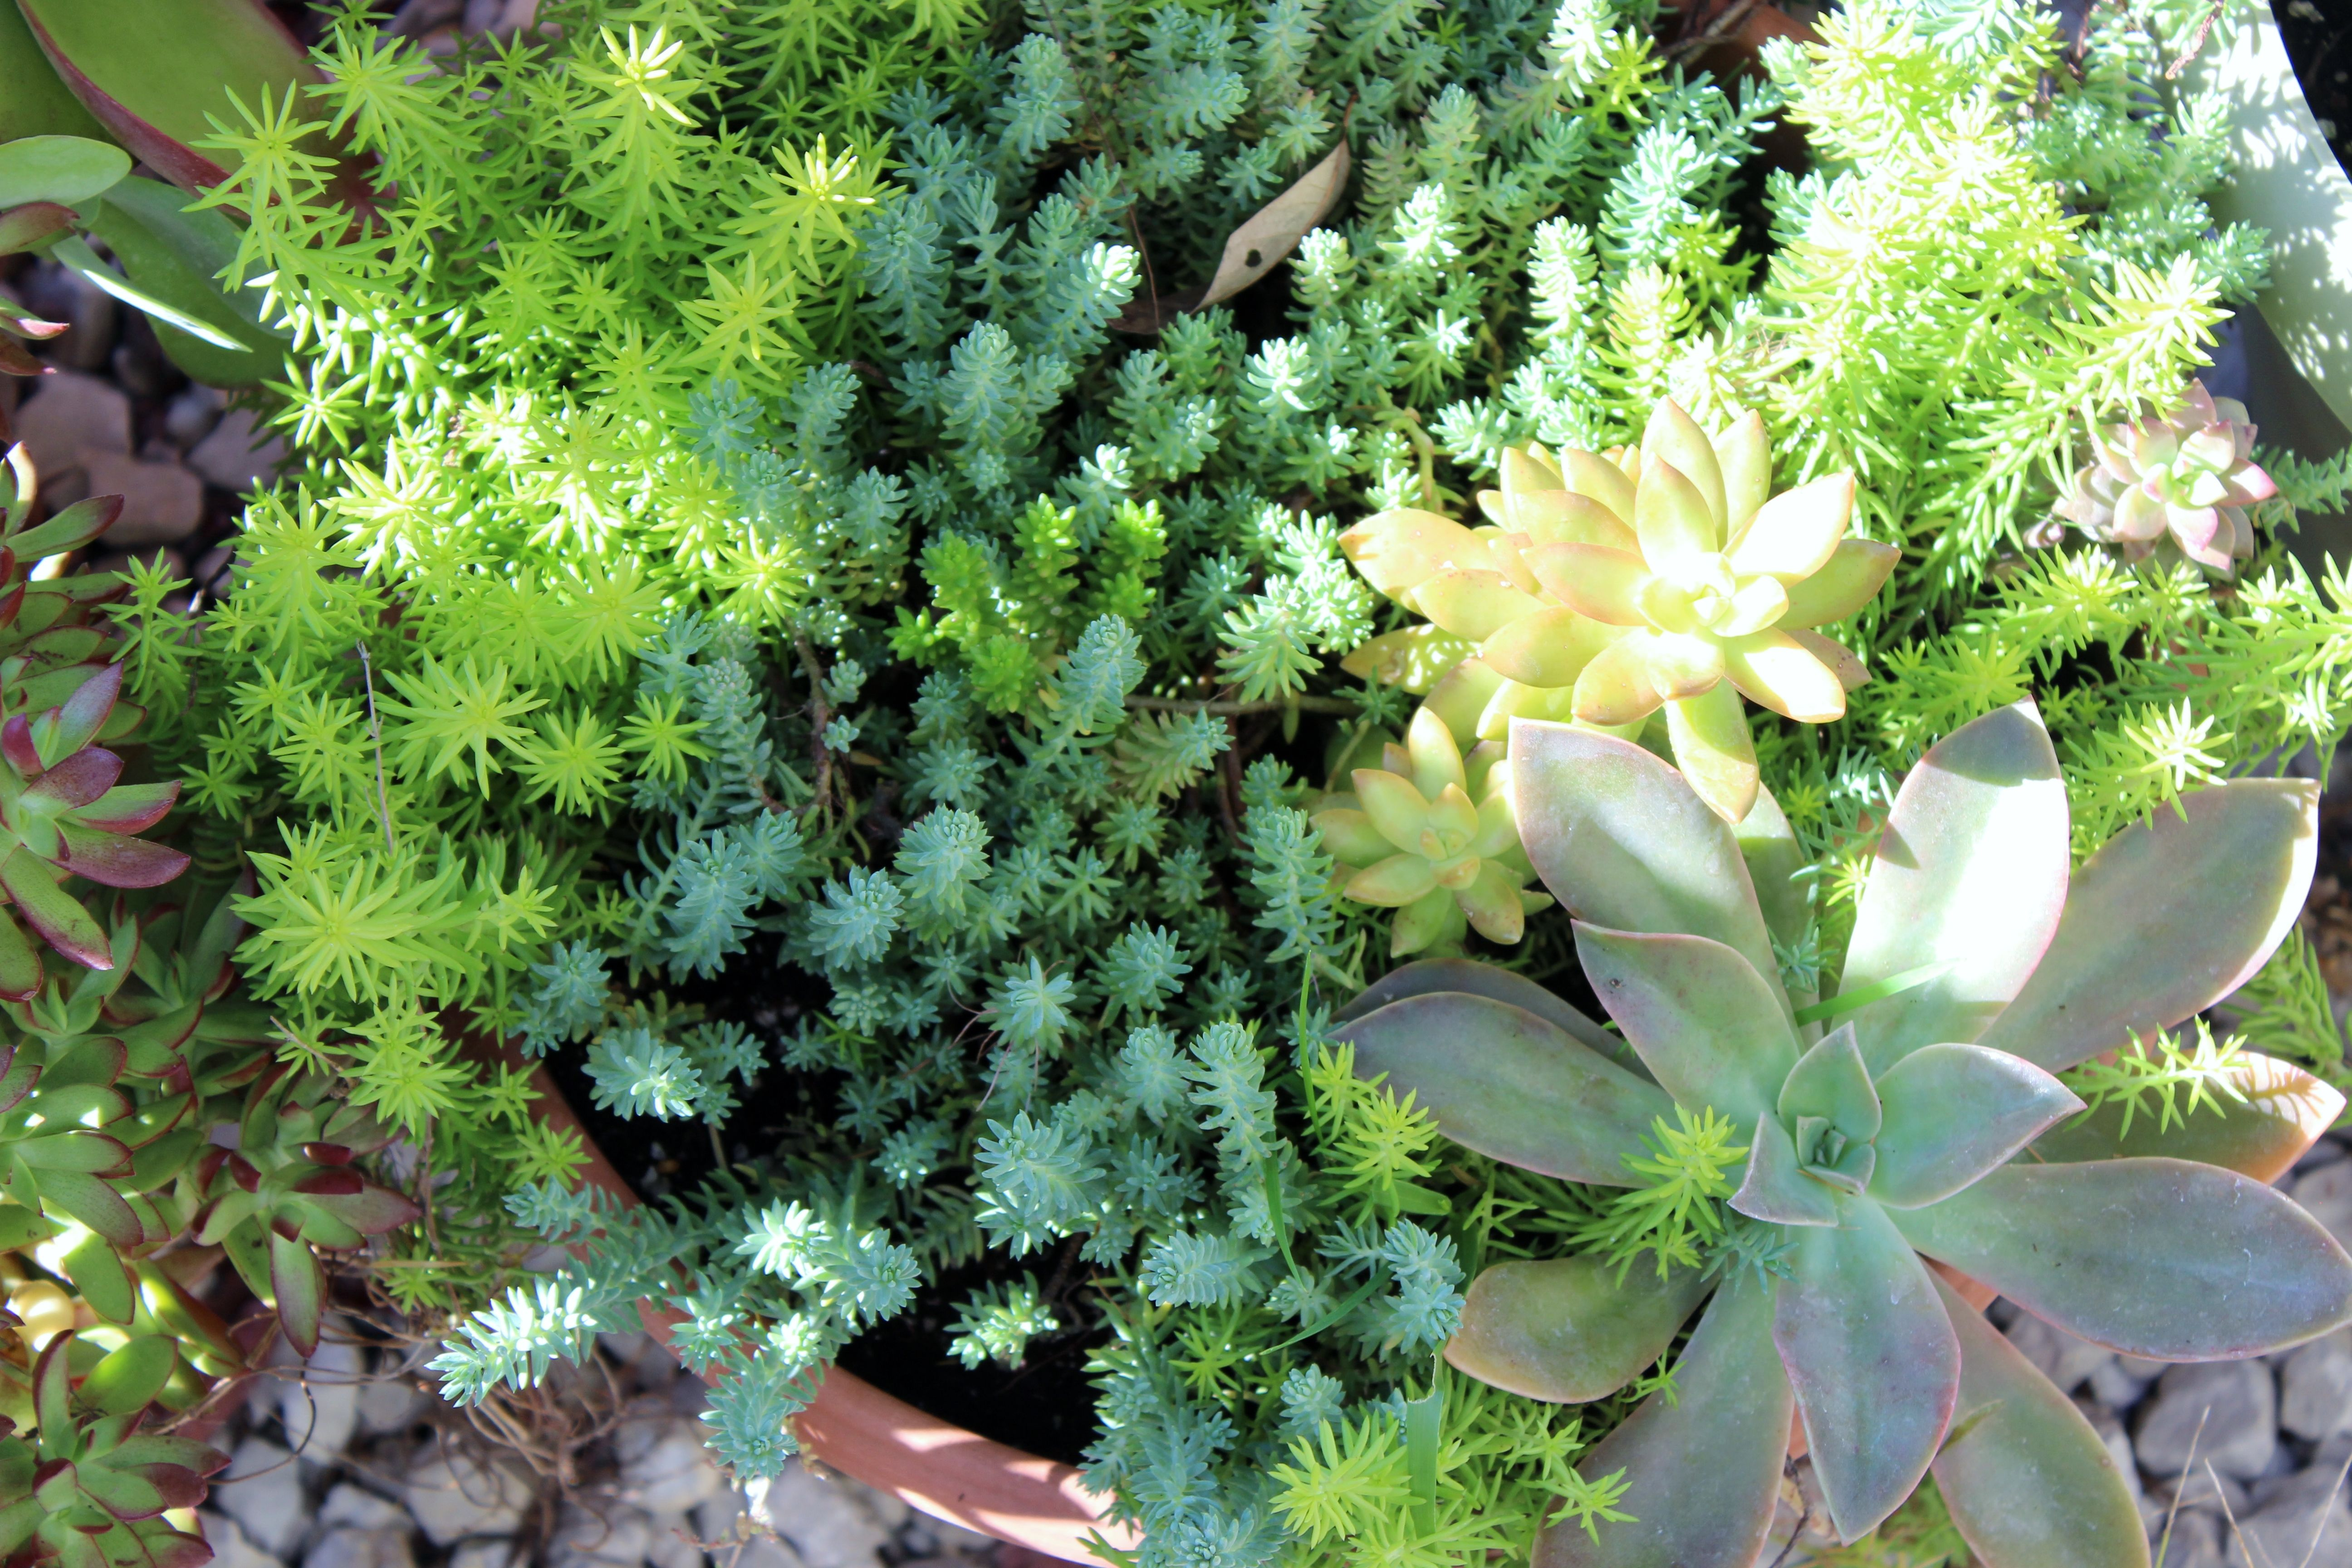 Succulents add so much color and texture to the winter greenhouse...I am going to learn to propagate them so I have more come spring!